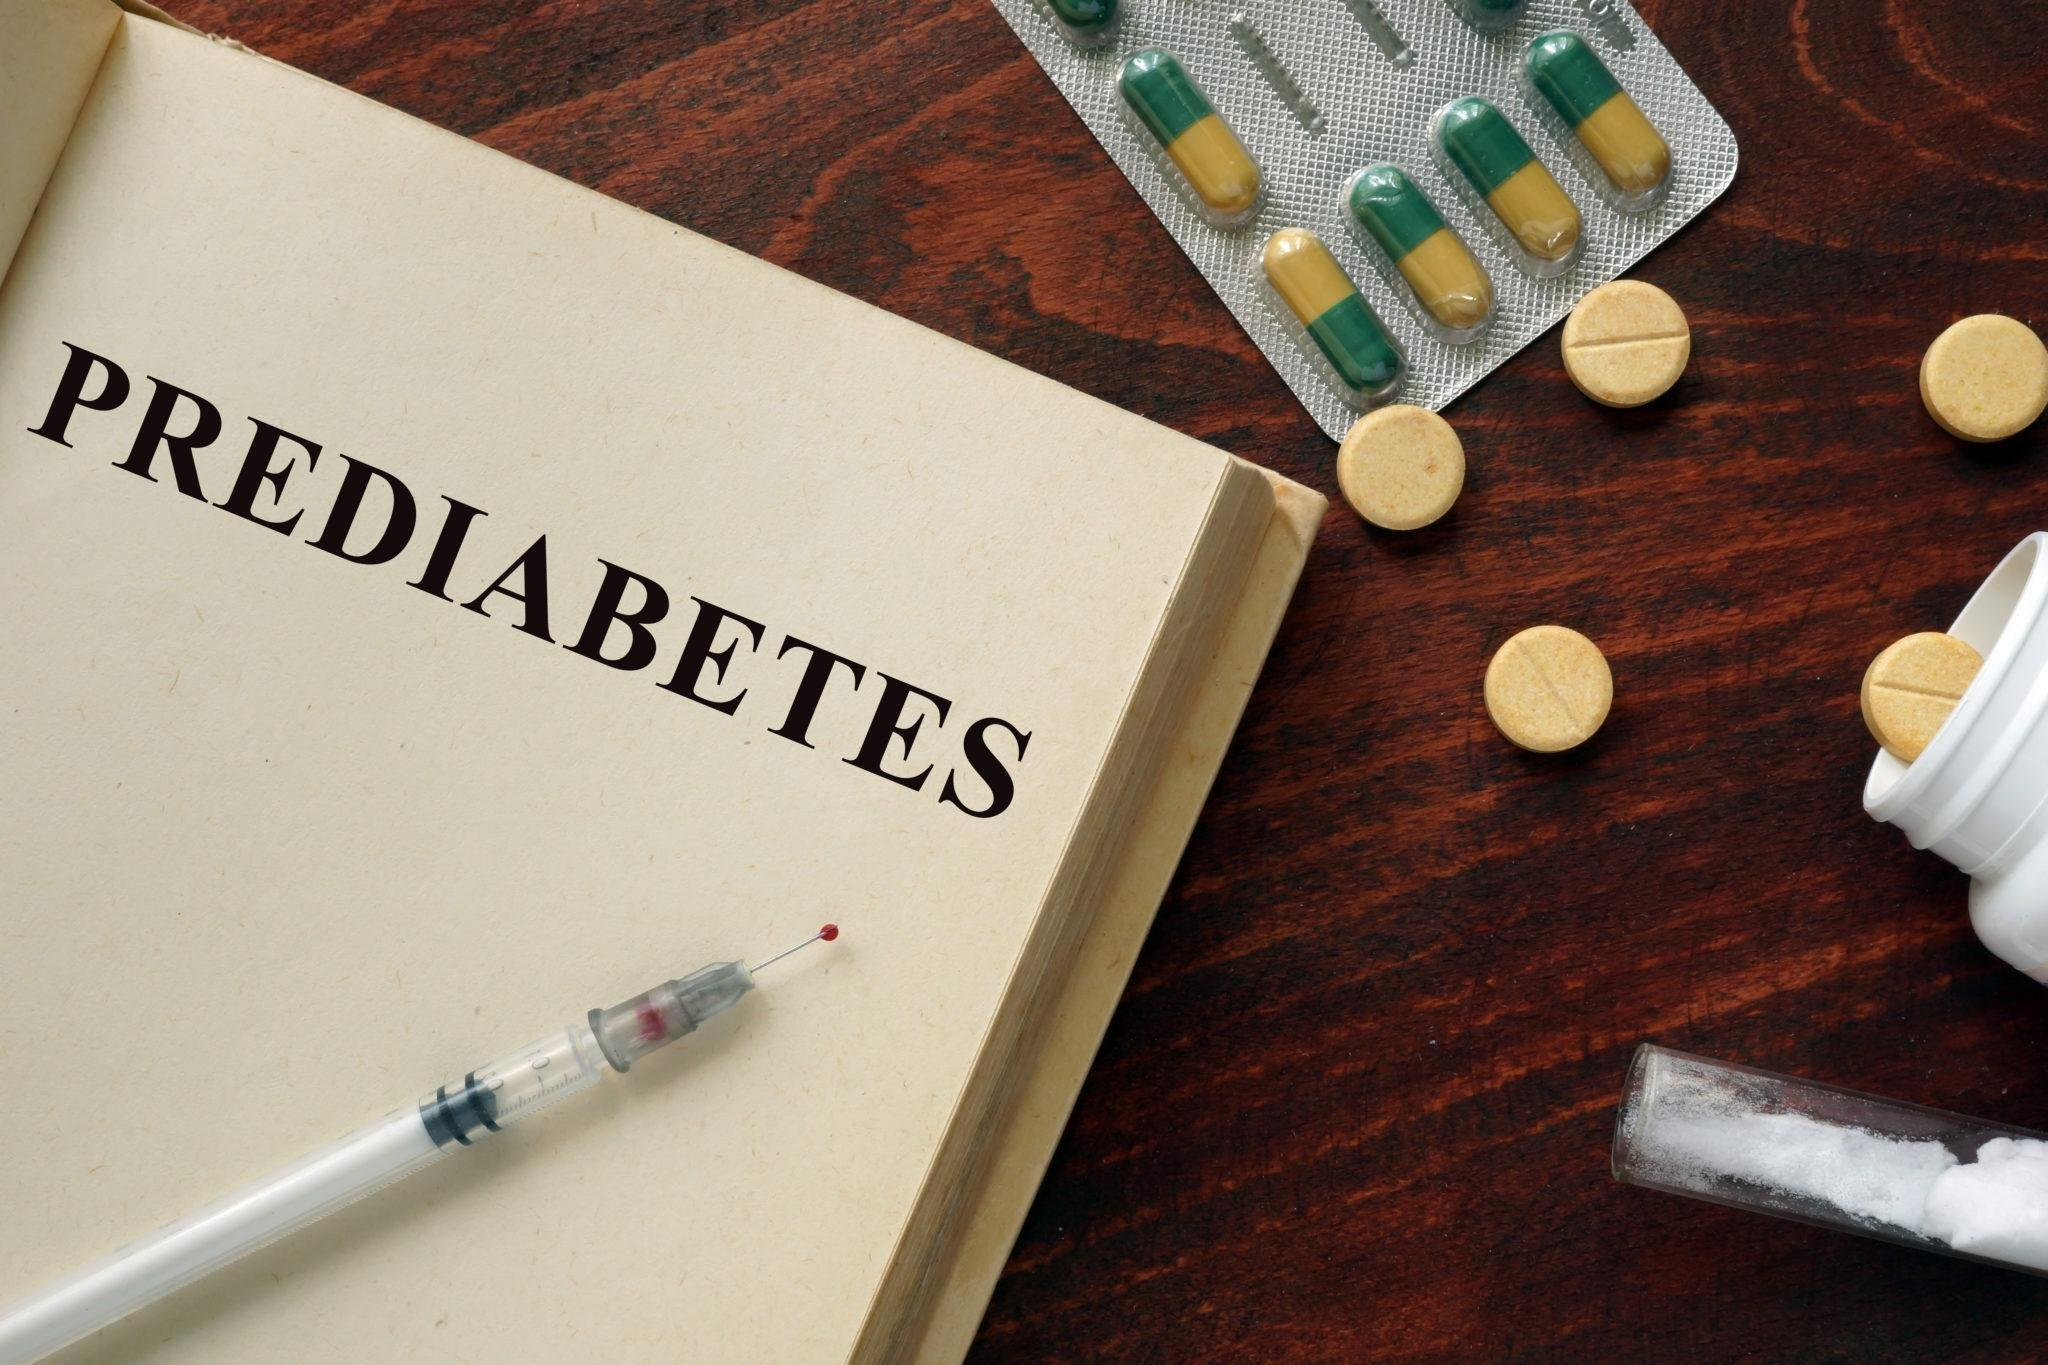 Where Can More Information Be Found About Prediabetes